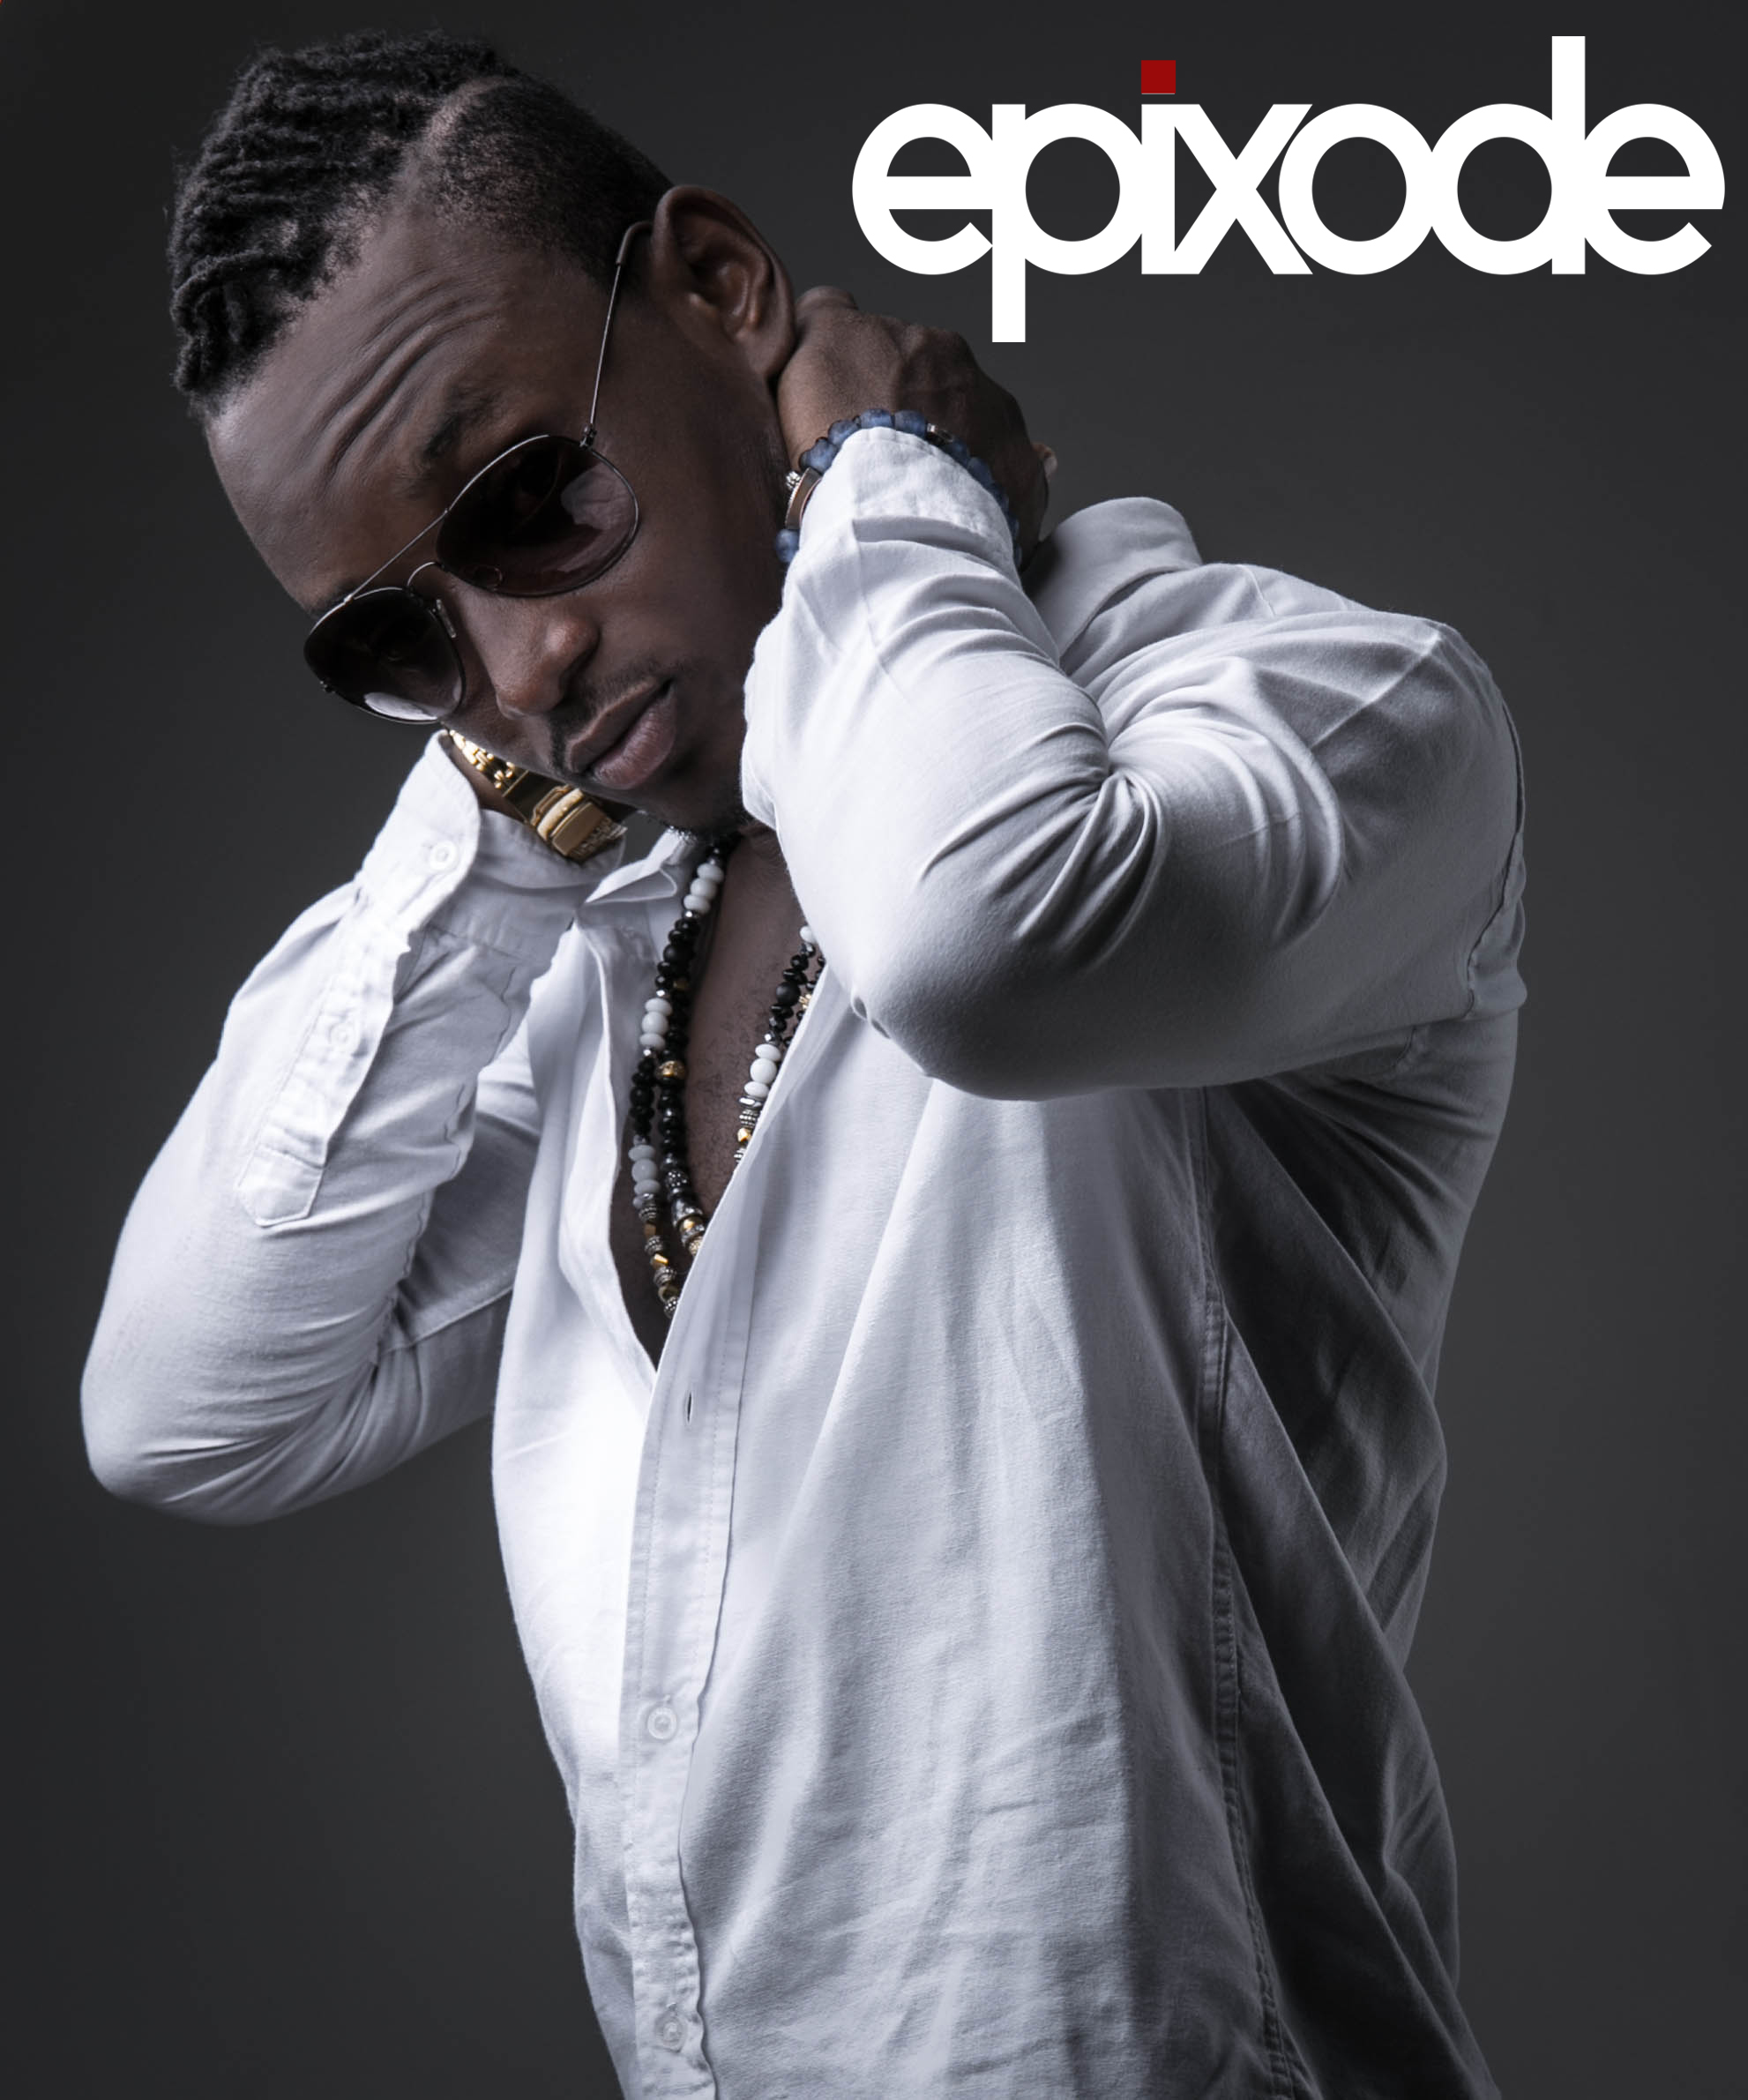 Music artist Epixode posing with his hands behind his head